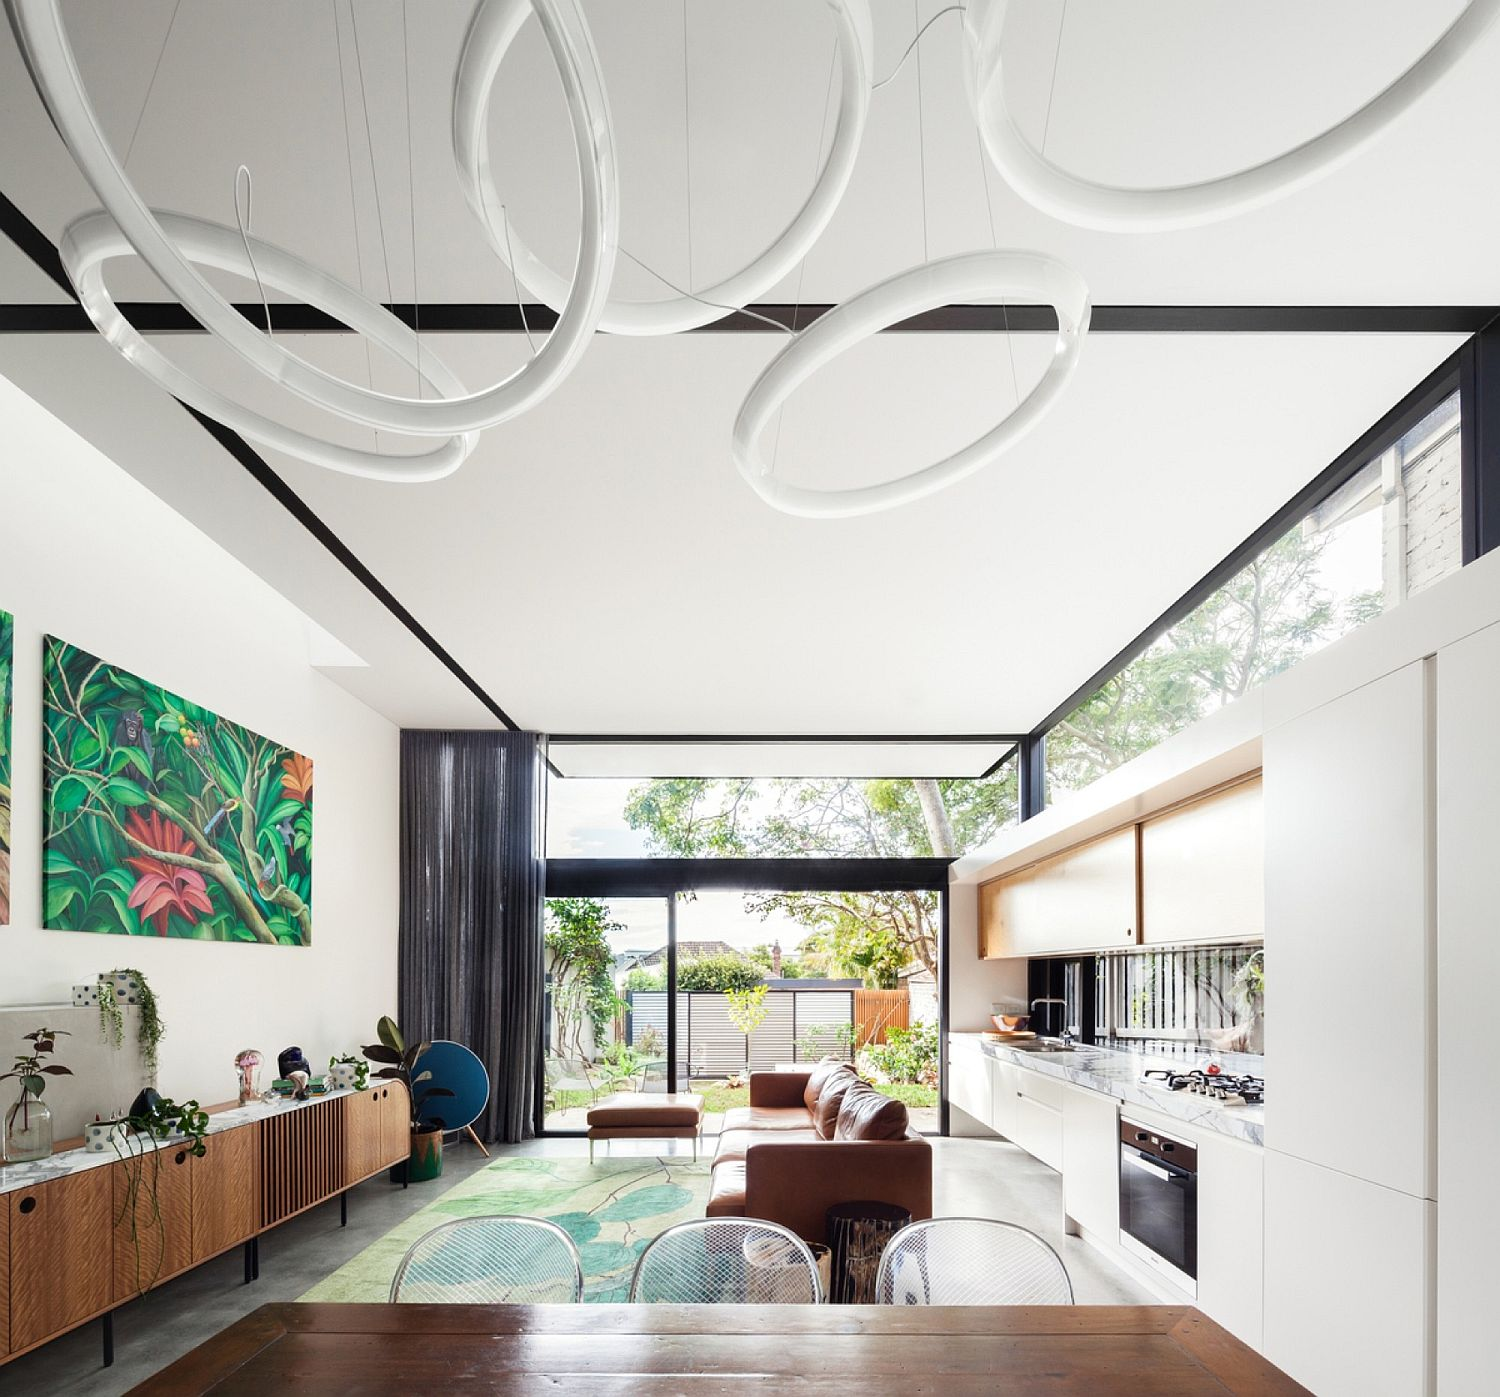 Art work brings color to open living area in white